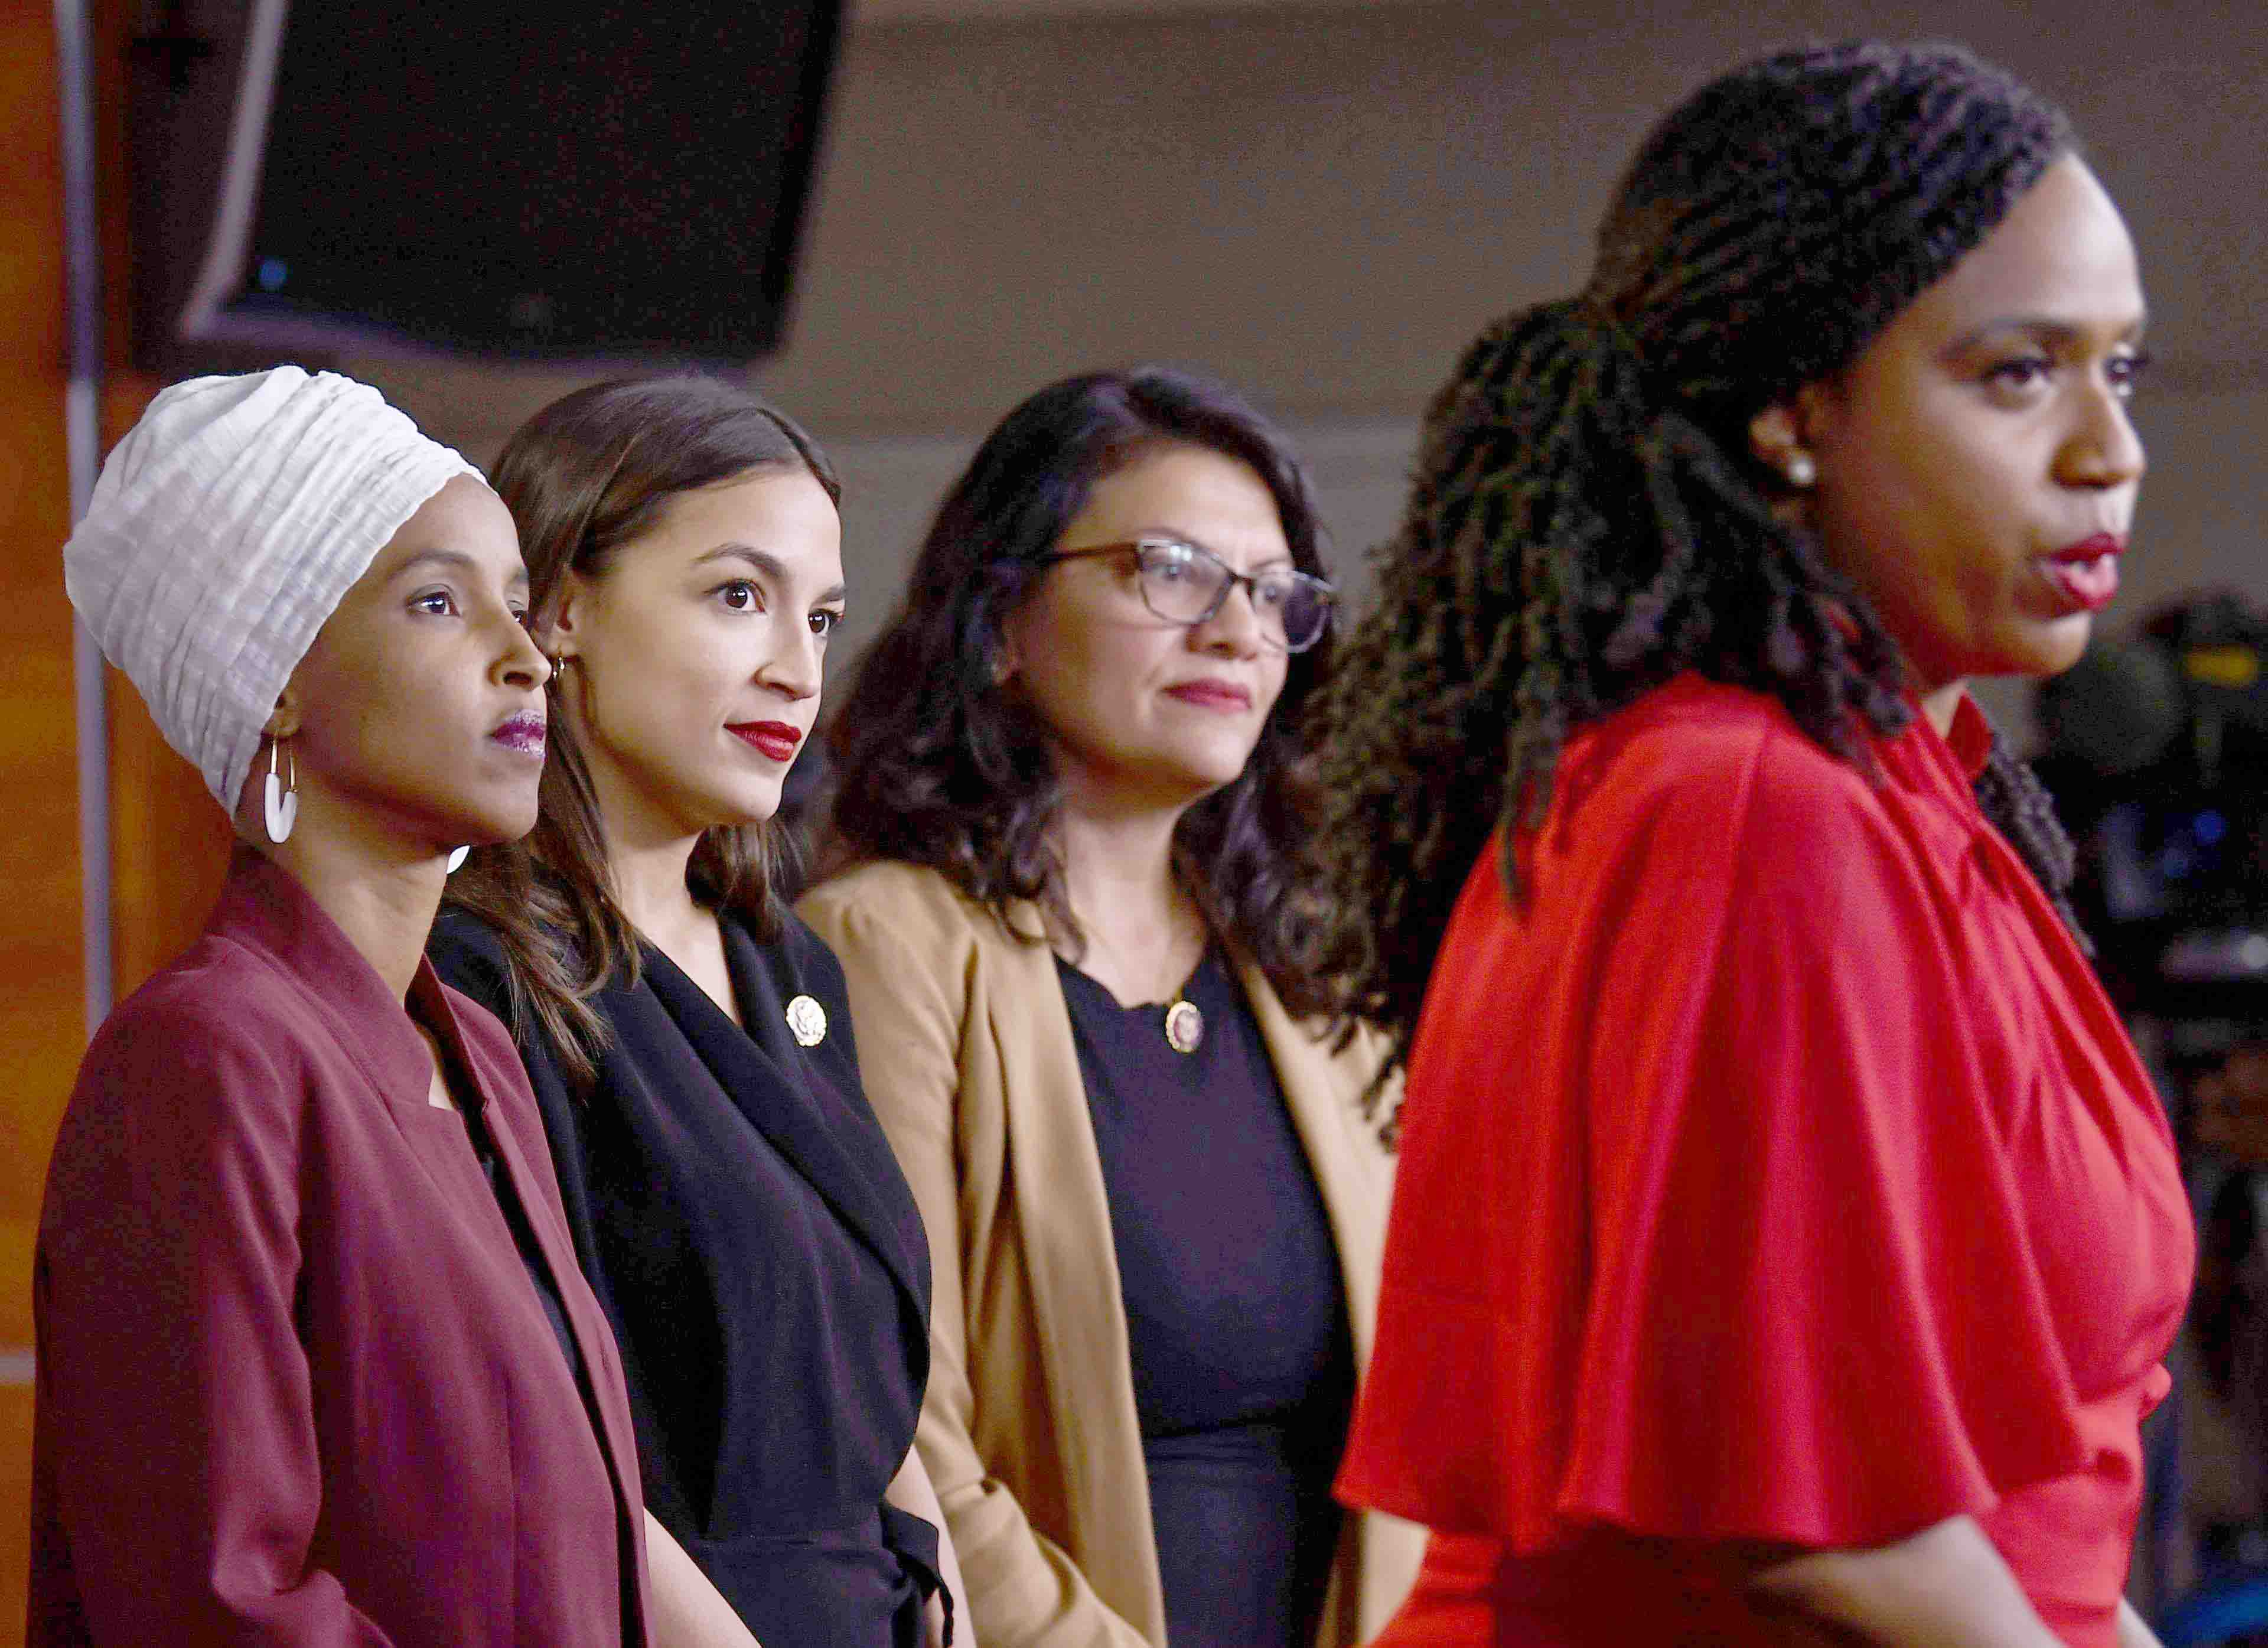 Not easily intimidated. US Representative Ayanna Pressley speaks as Ilhan Abdullahi Omar (L), Rashida Tlaib (2nd R) and Alexandria Ocasio-Cortez hold a news conference to address remarks made by US President Donald Trump, July 15. (AFP)